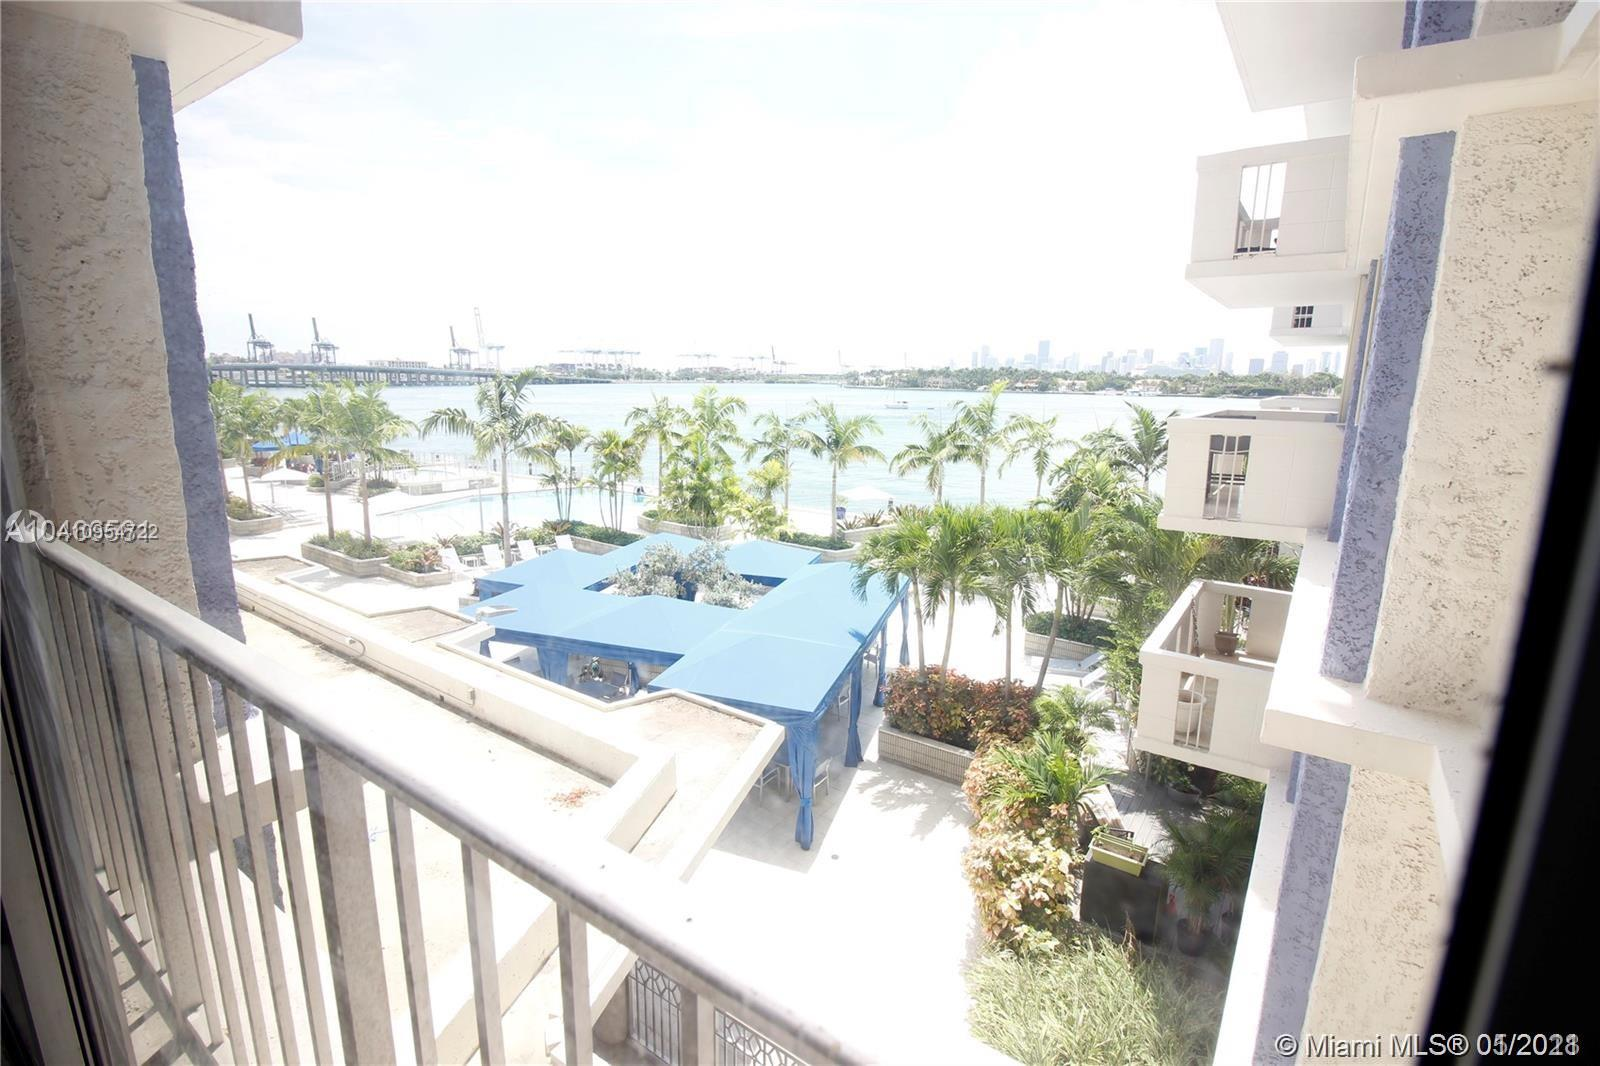 South Bay Club #433 - 800 West Ave #433, Miami Beach, FL 33139